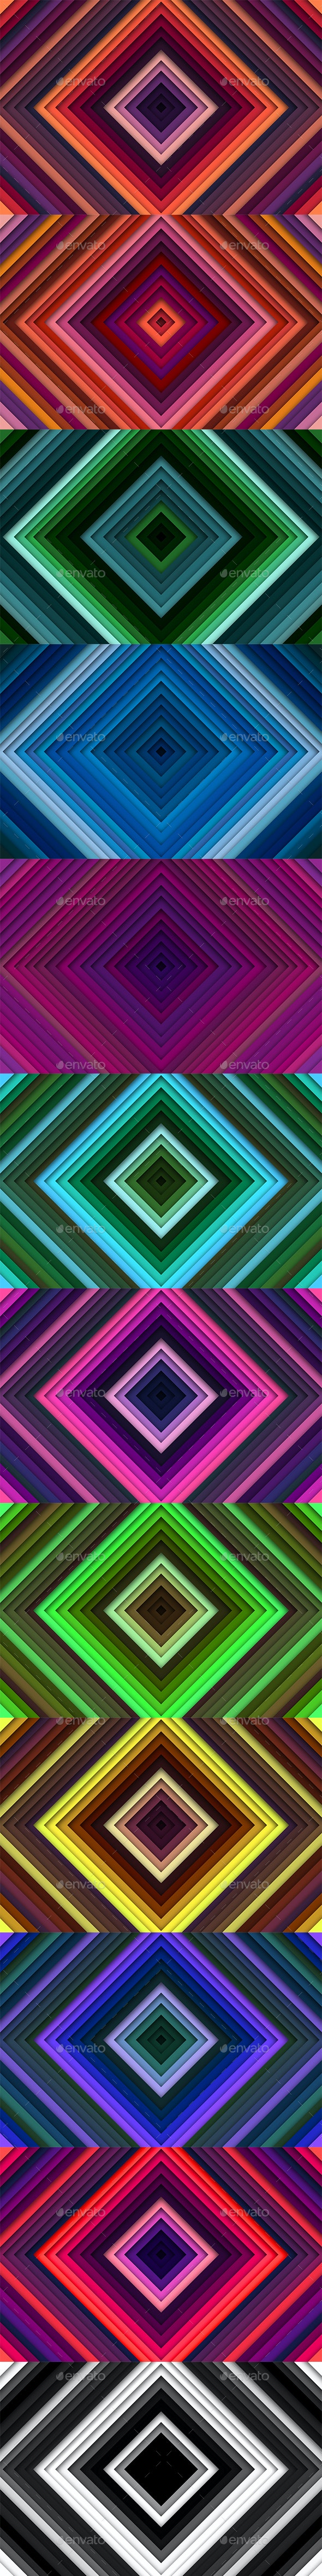 Squared Backgrounds - Abstract Backgrounds